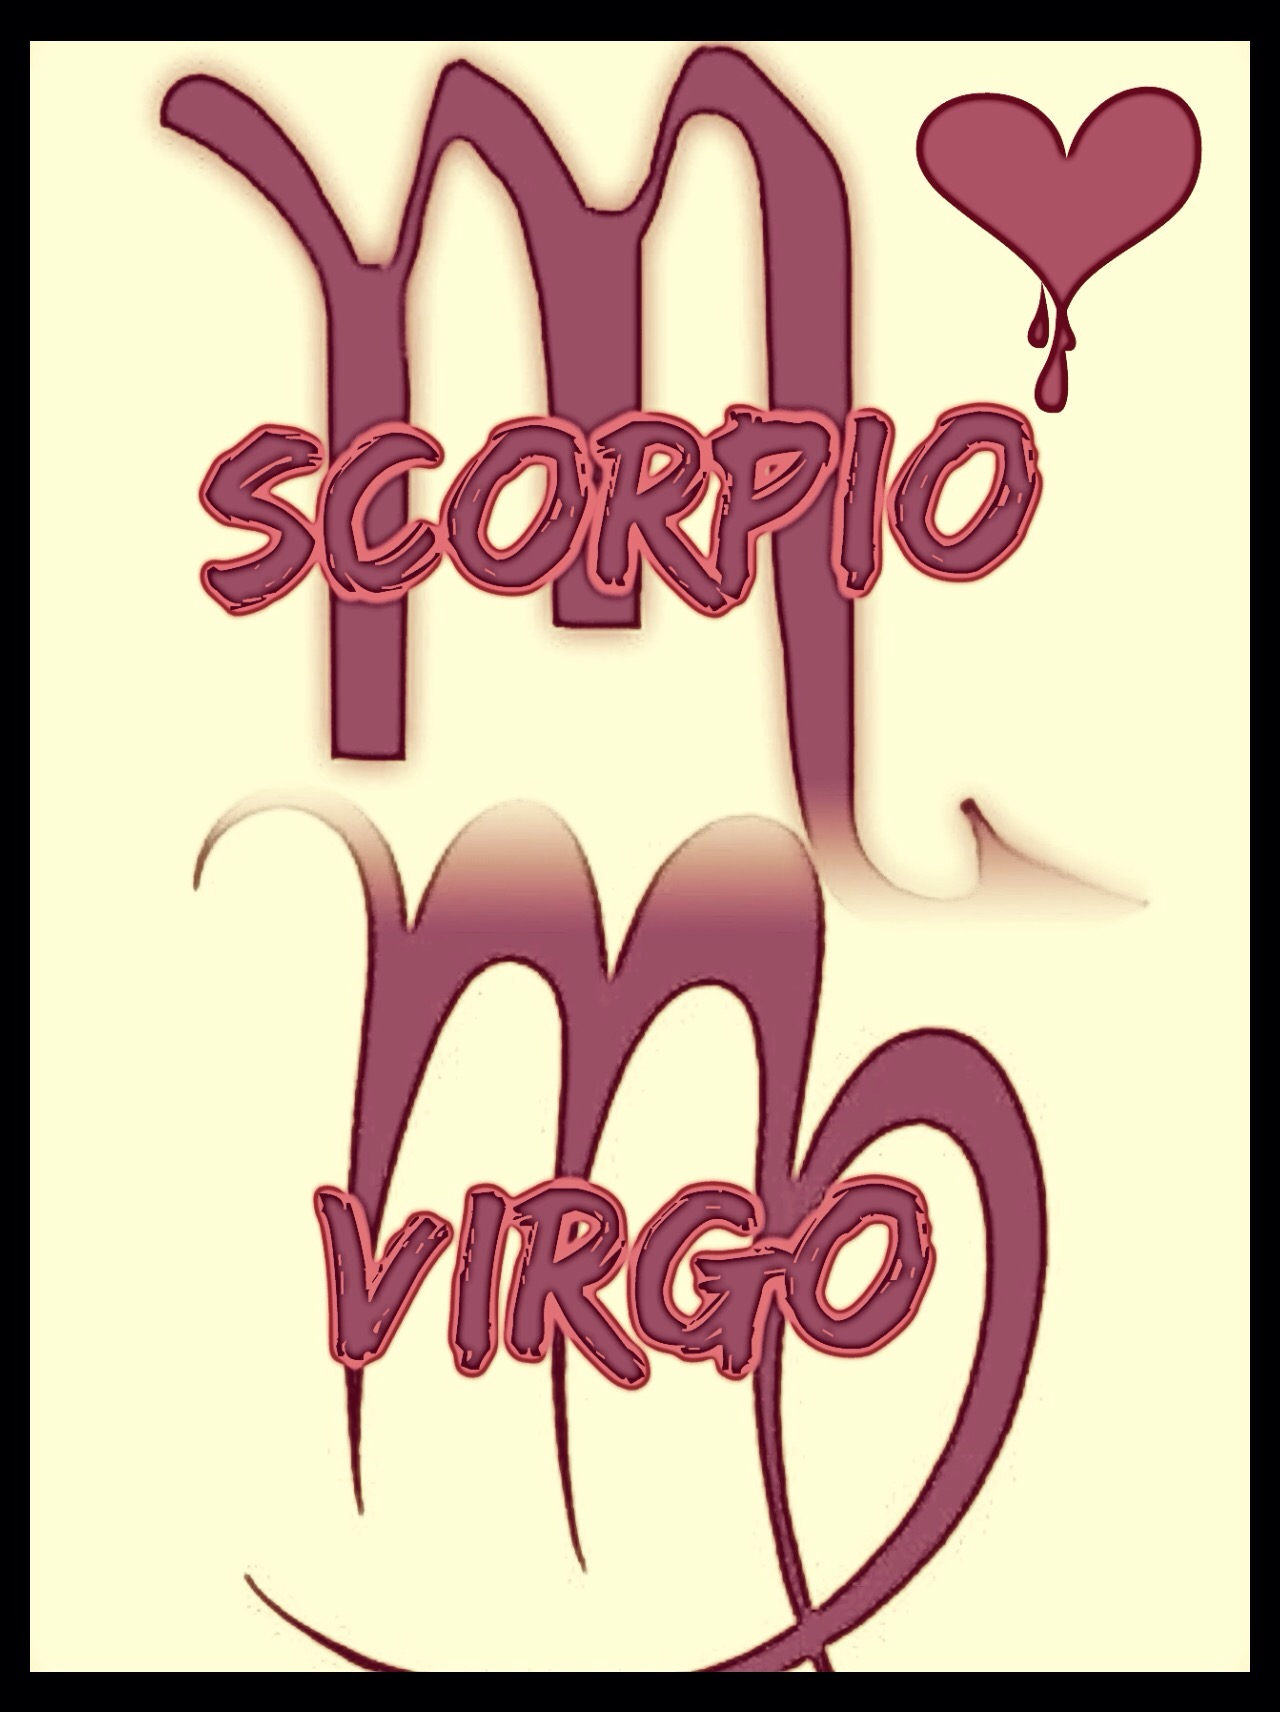 Love compatibility scorpio and virgo crystal life coach love compatibility scorpio and virgo nvjuhfo Image collections